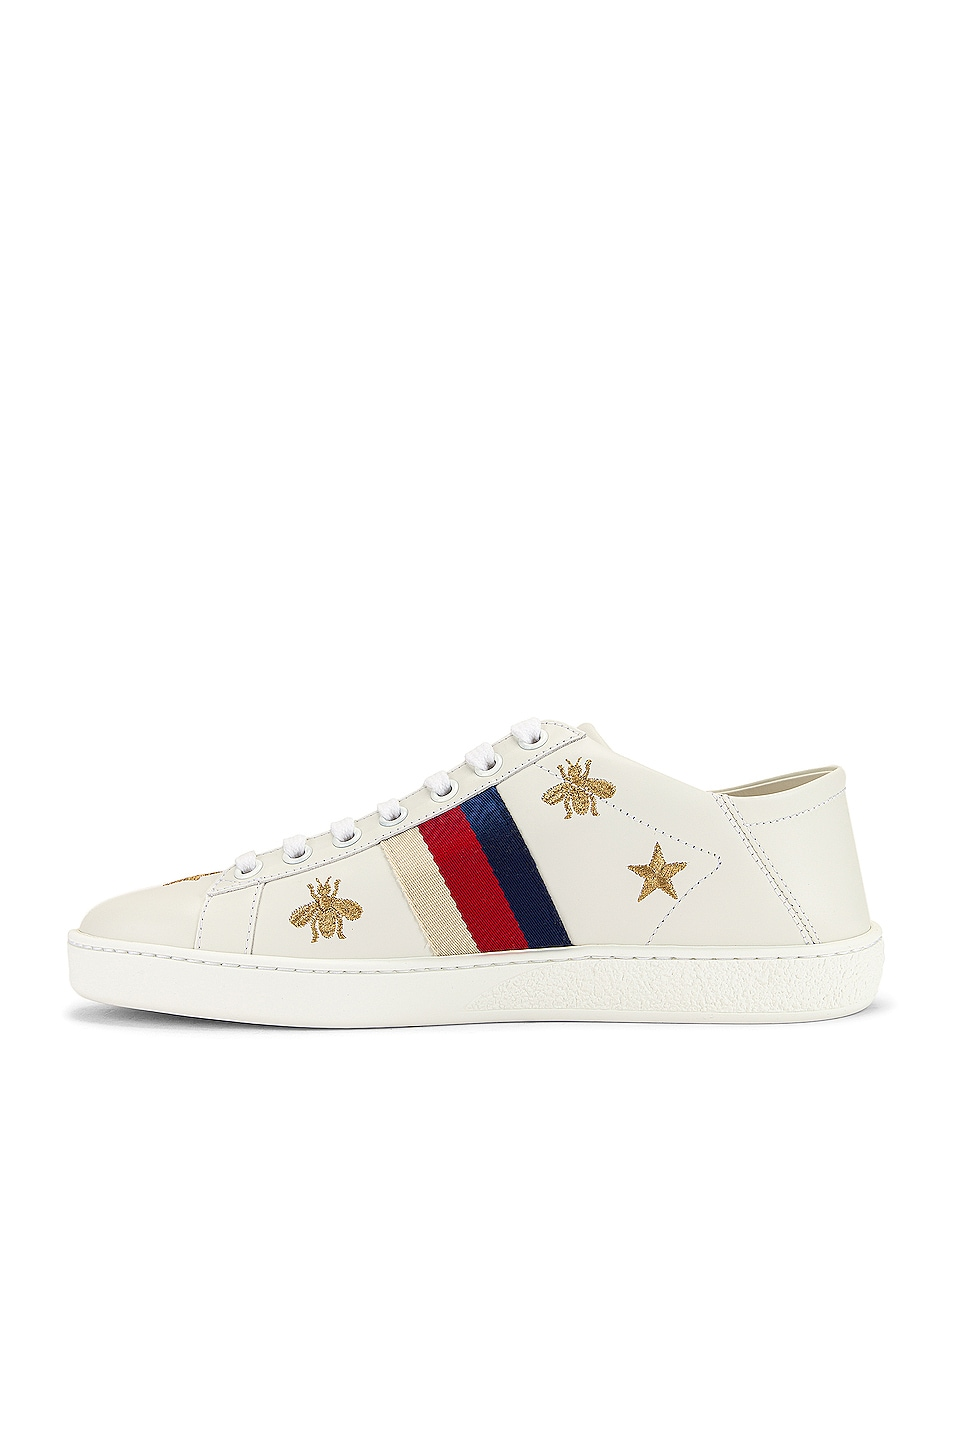 Image 5 of Gucci New Ace Sneakers in White